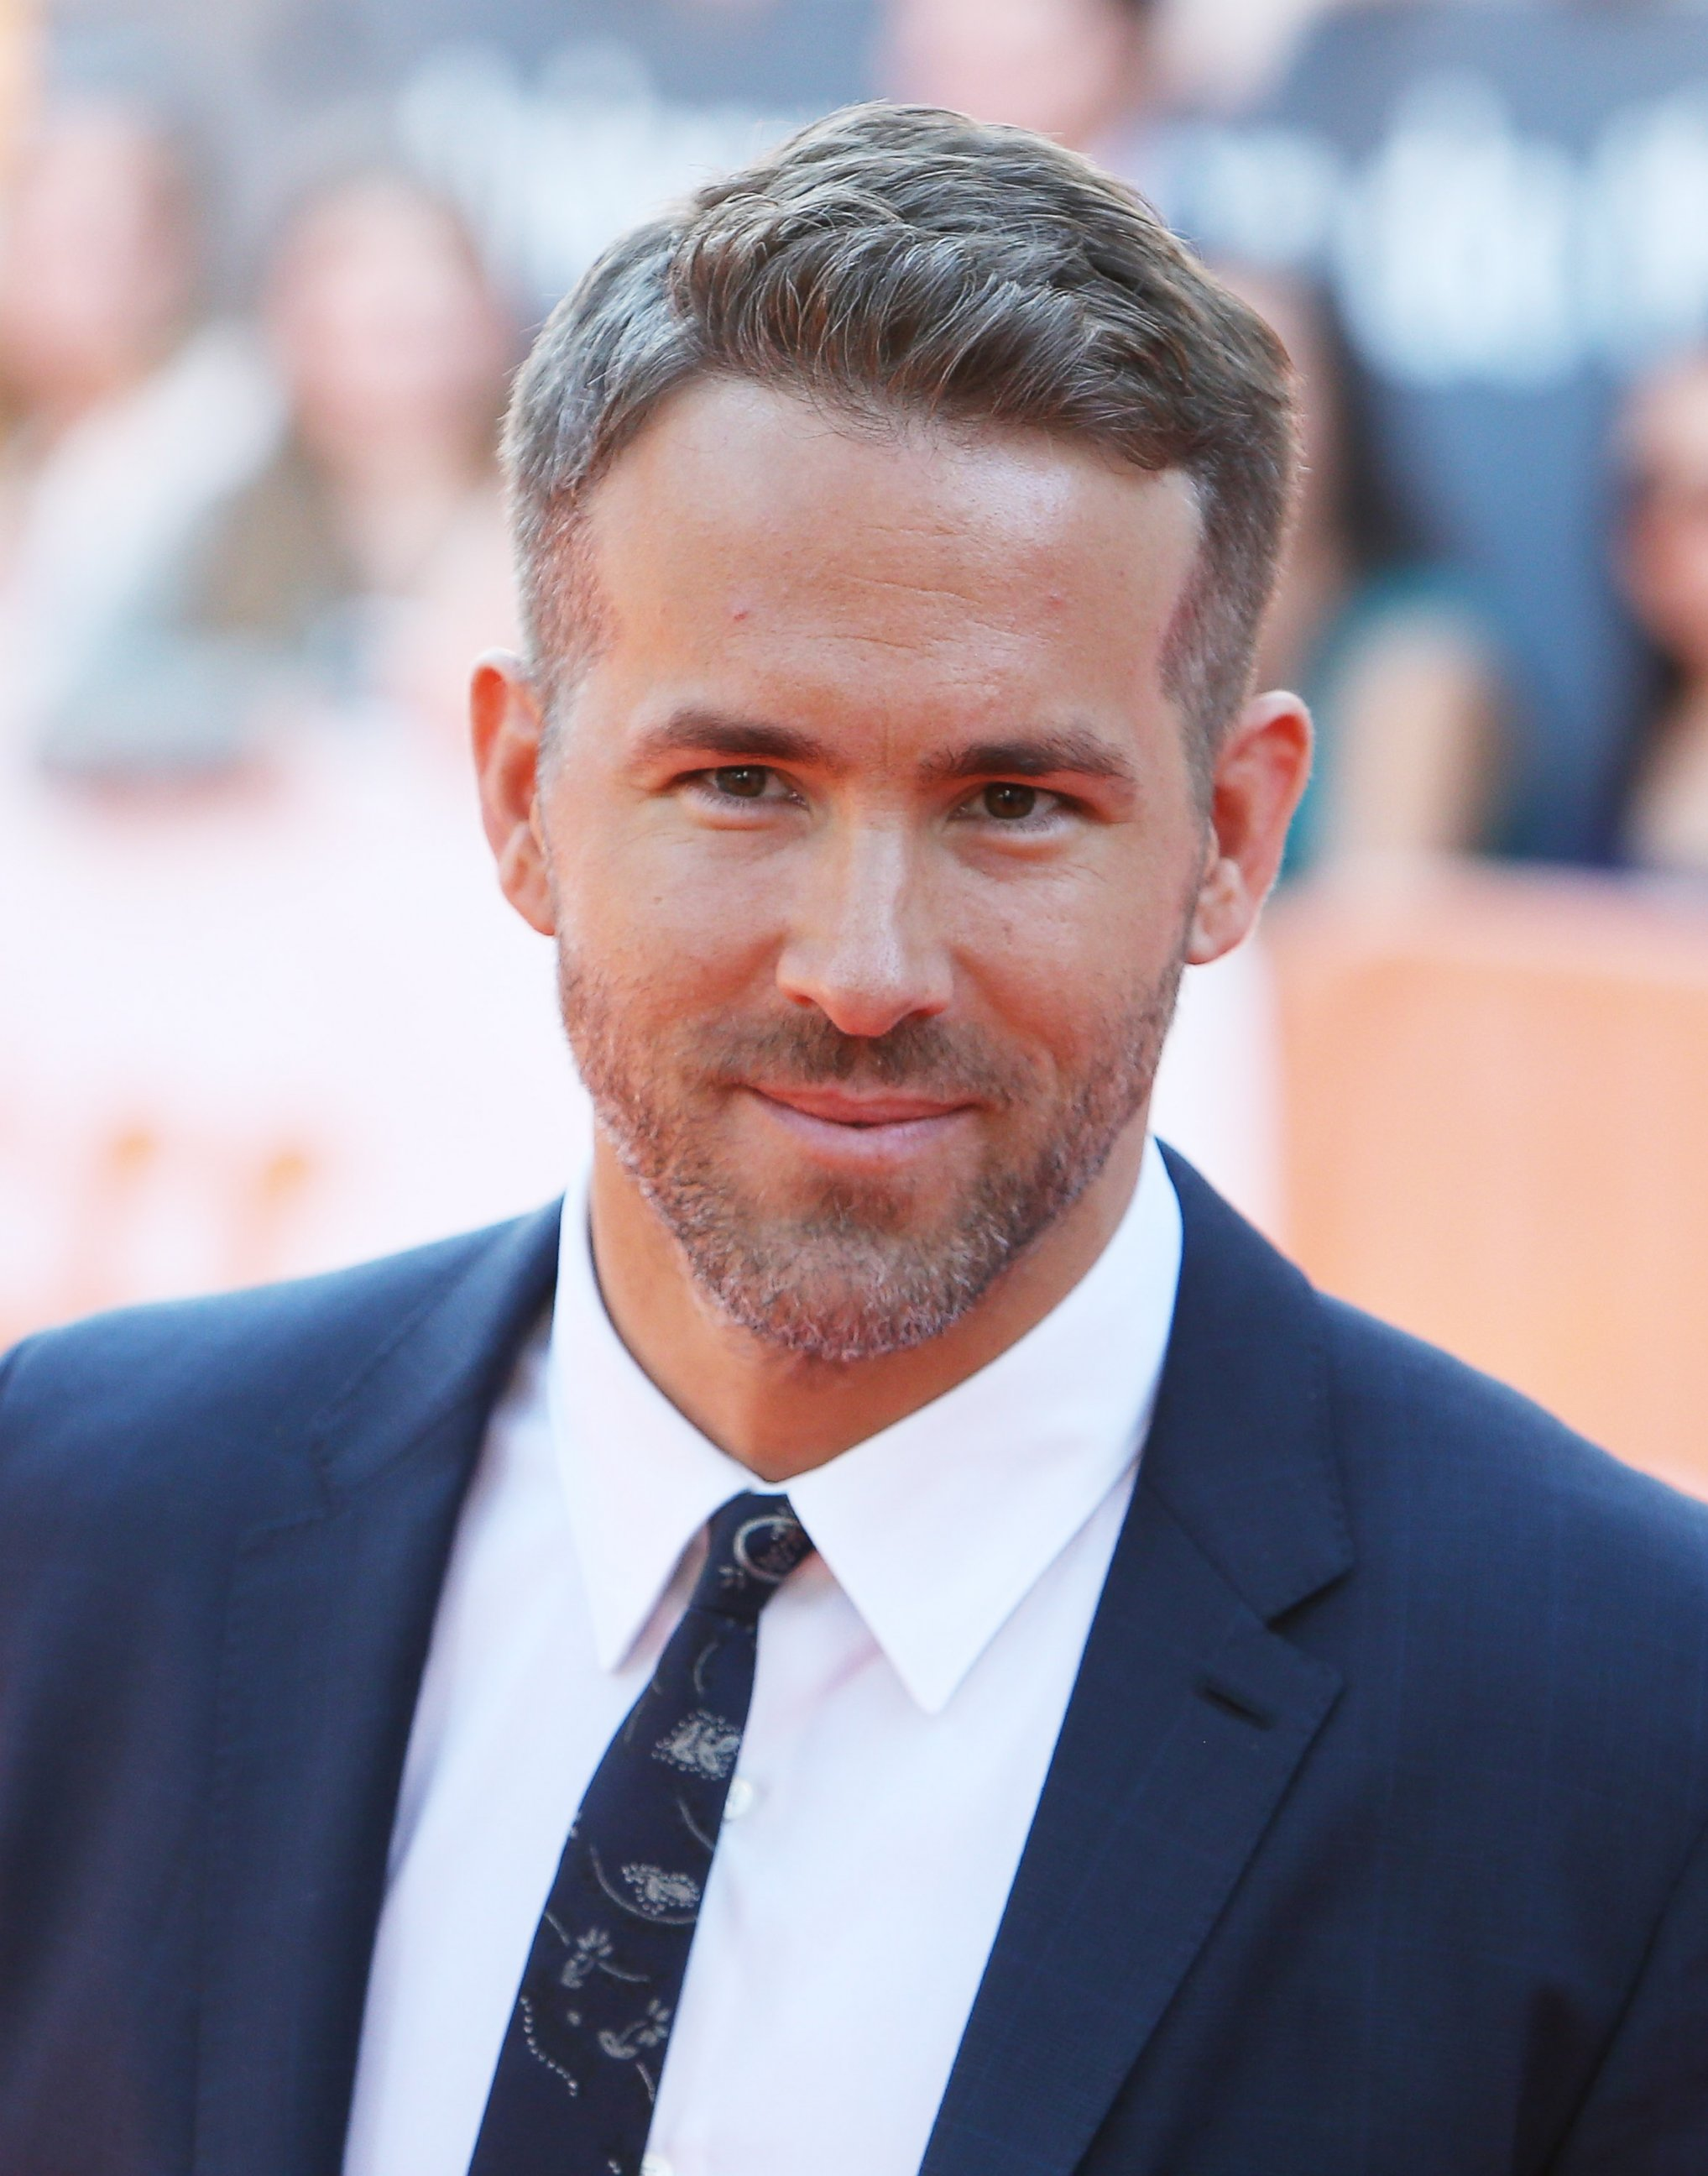 ... ryan reynolds flaunts silver hair thu 17 sep 2015 ryan reynolds Ryan Reynolds